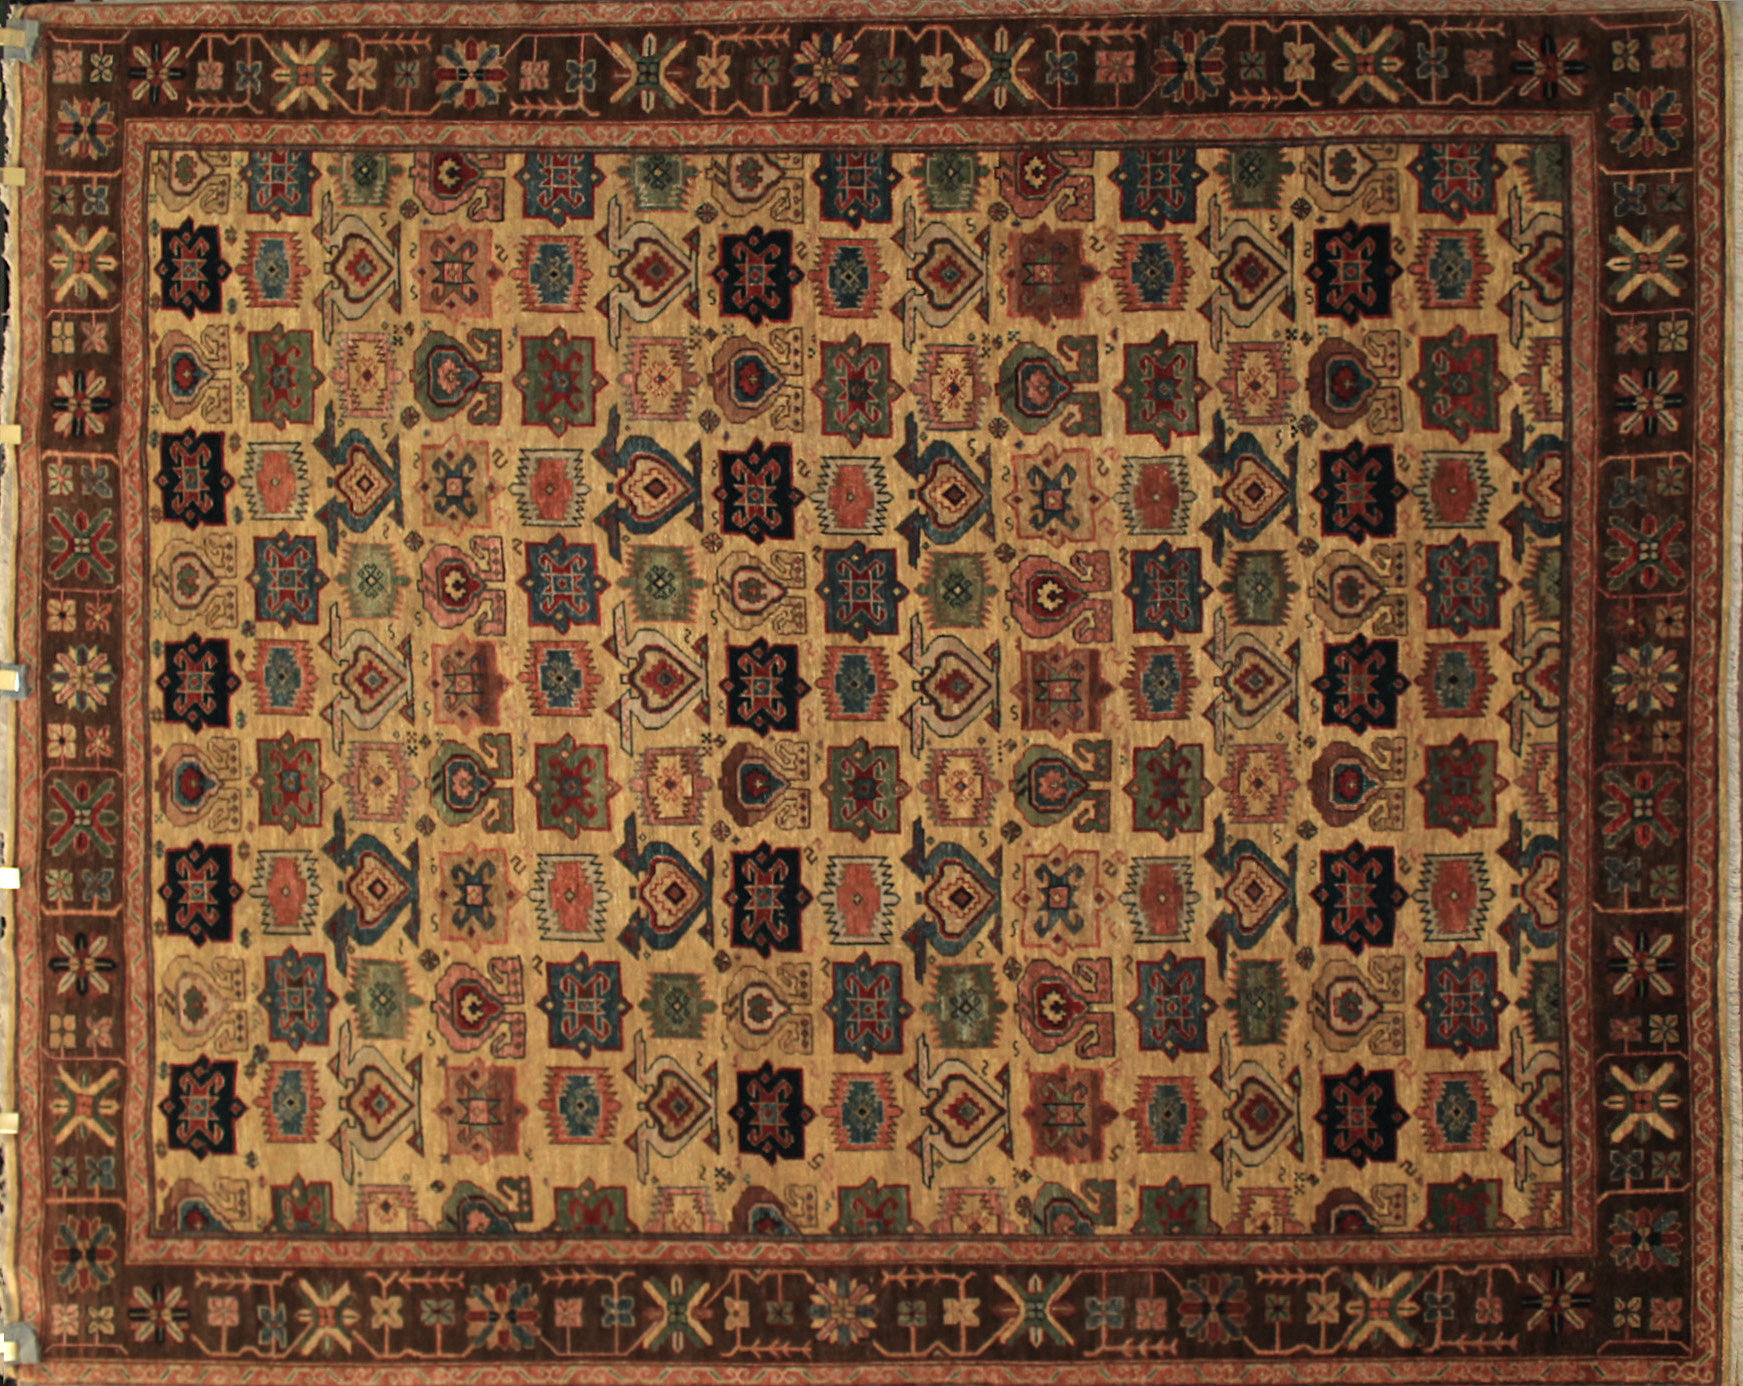 8x10 Traditional Hand Knotted Wool Area Rug - MR12170